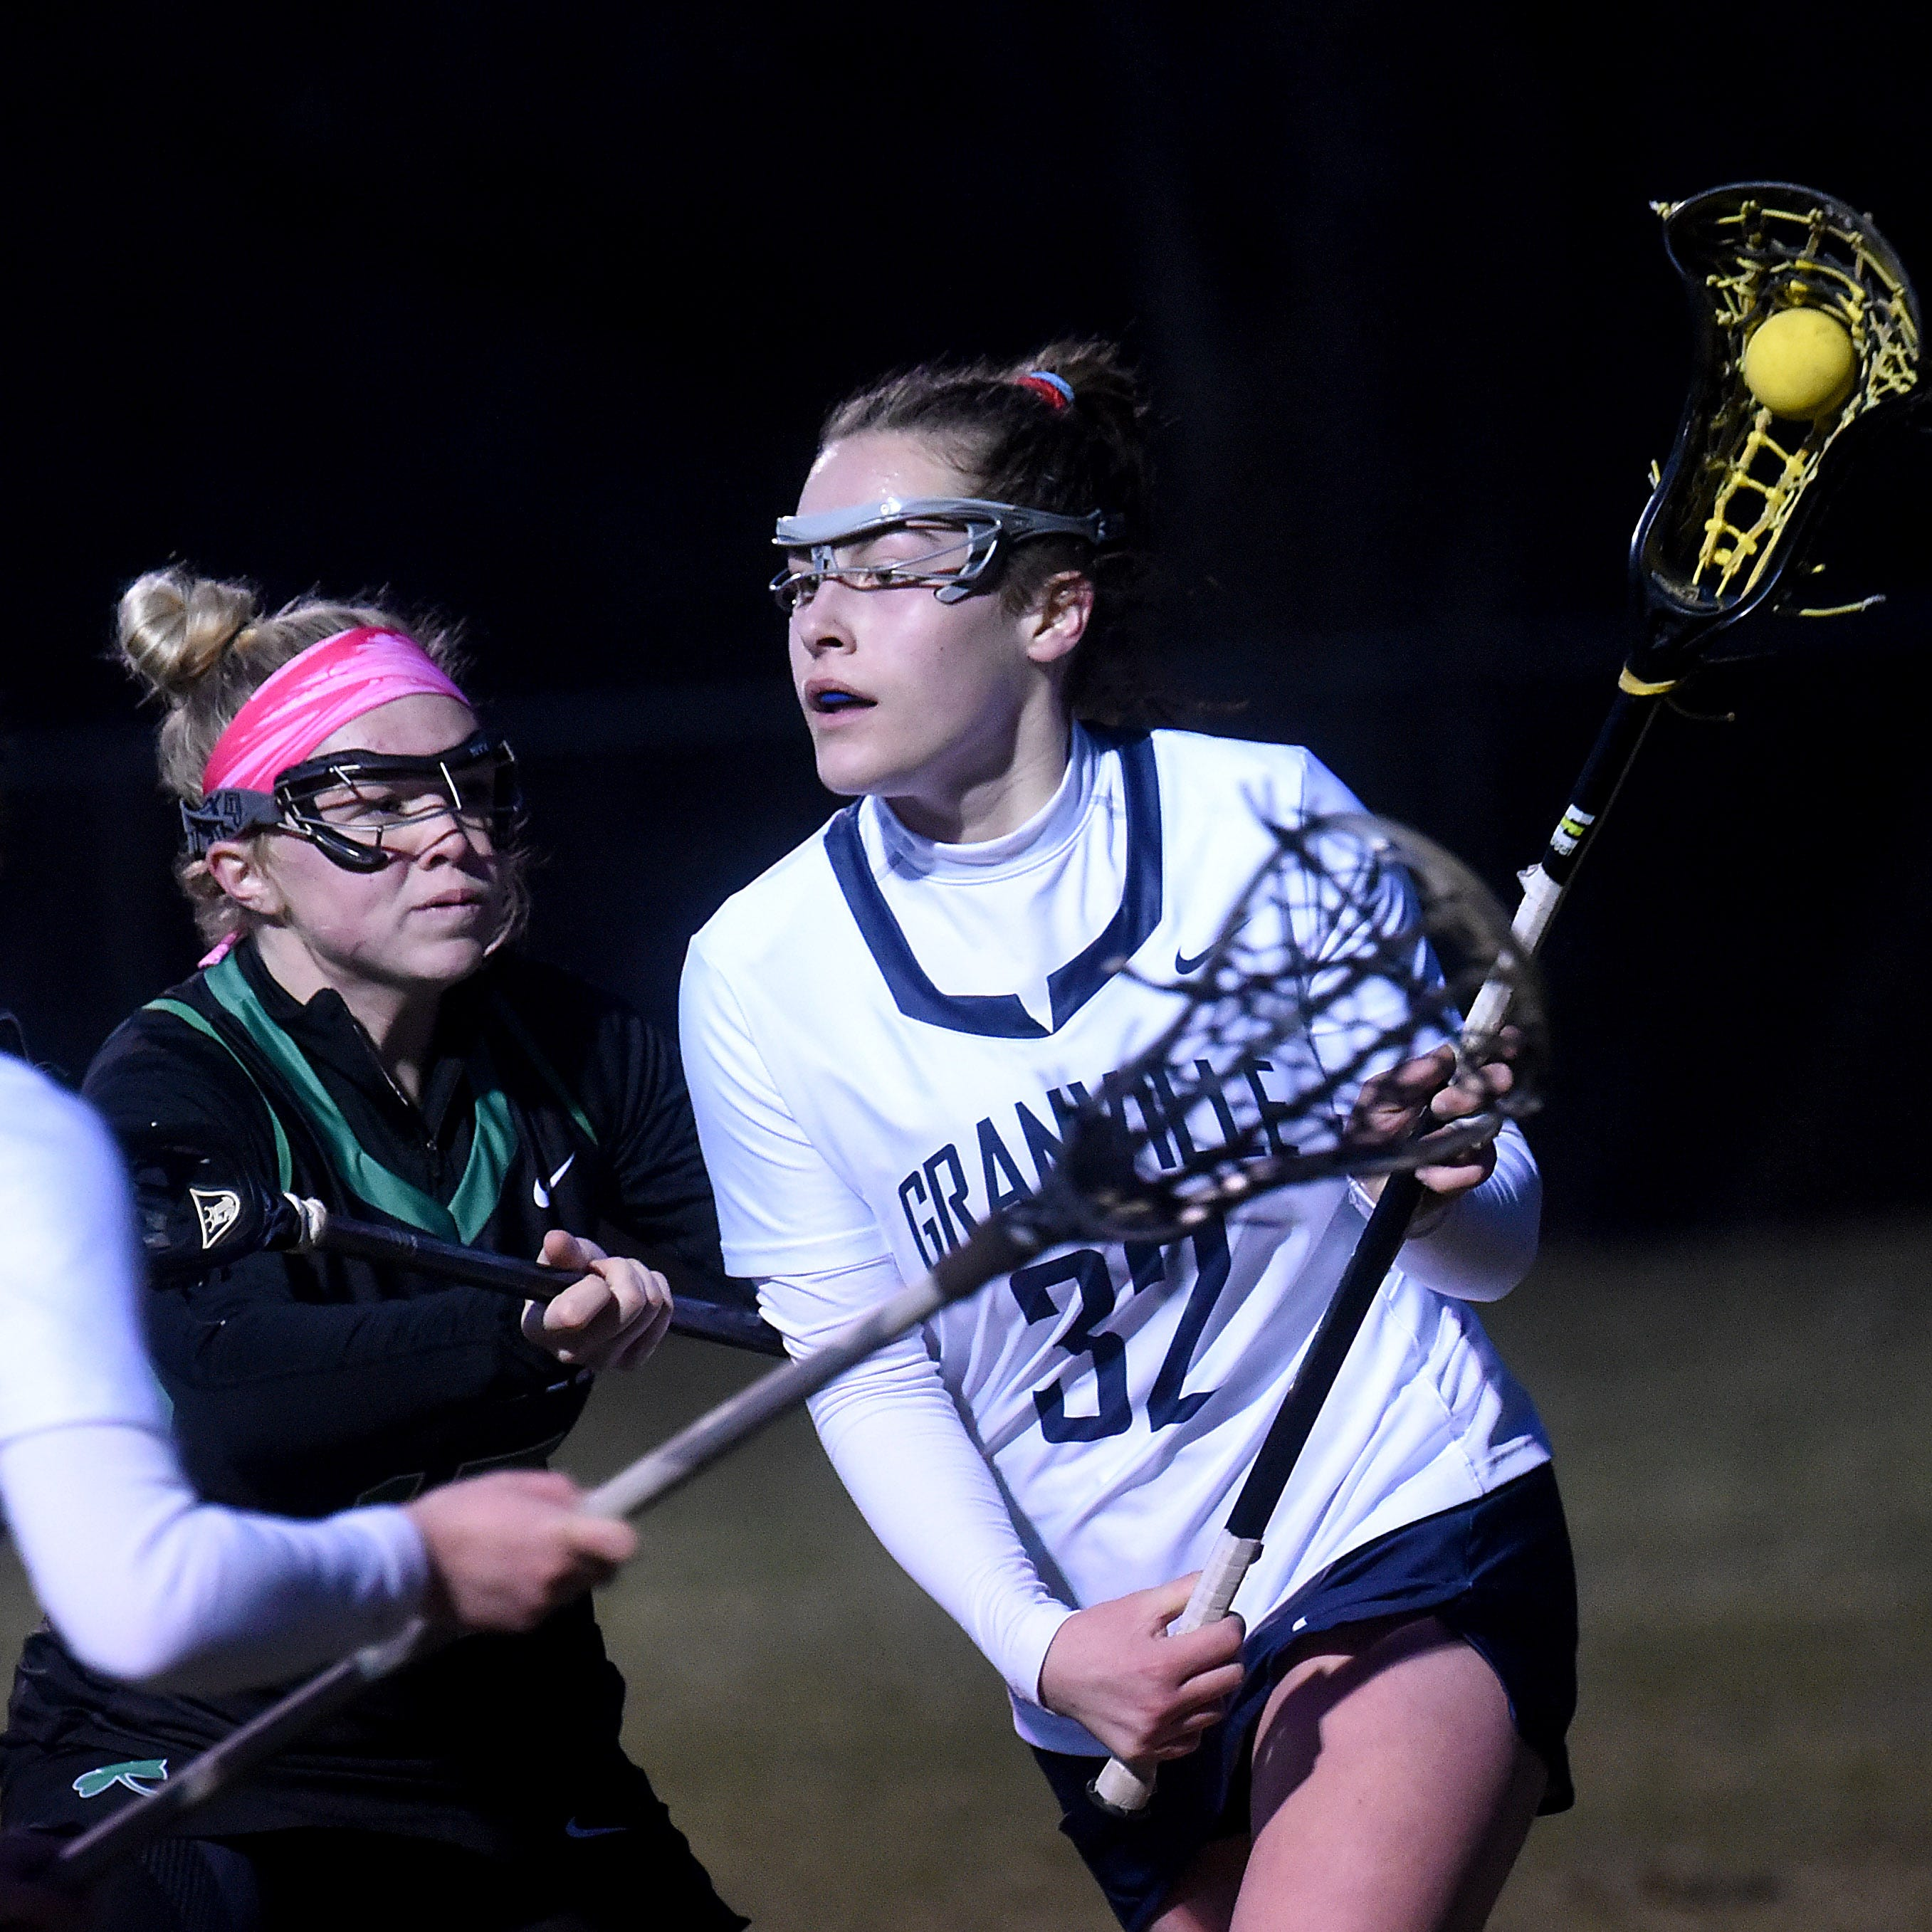 Granville girls lacrosse ready to break into elite in central Ohio